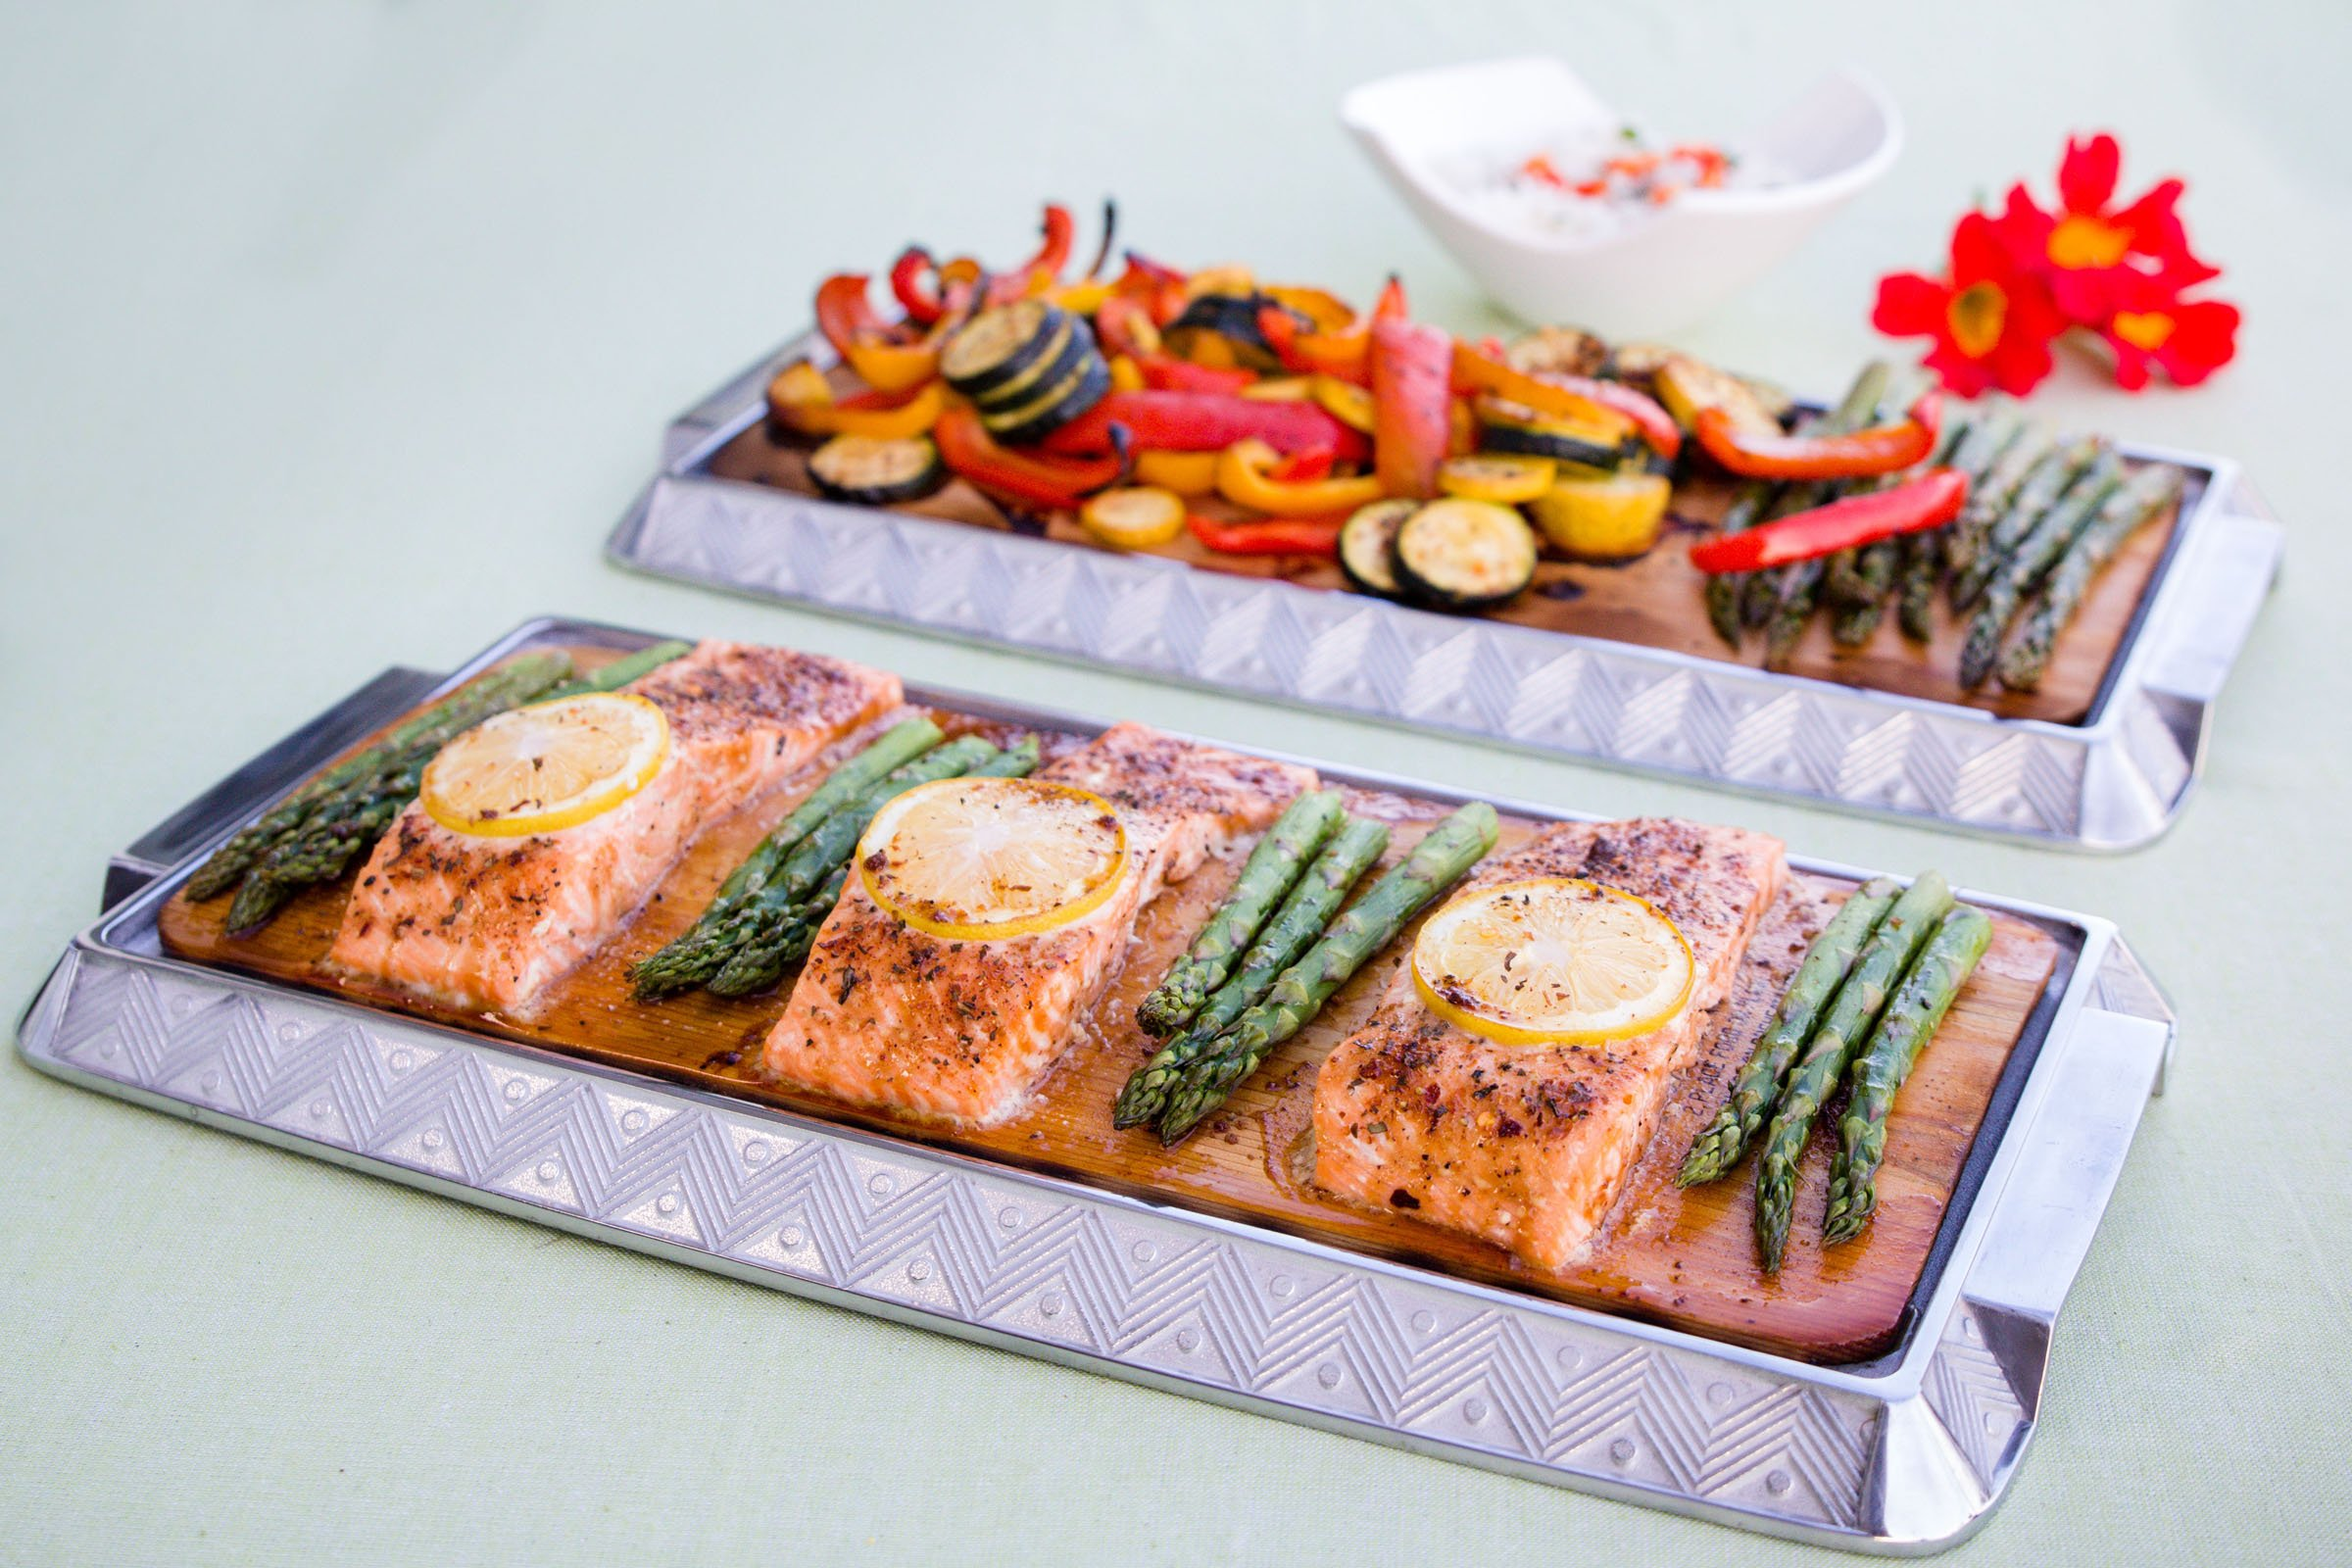 Coastal Cuisine 14 Pack 7x16'' Cedar Grilling Planks + Aluminum Serving Platter – Perfect for any grilling enthusiast.  Enjoy delicious restaurant quality meals and a stunning presentation. by Coastal Cuisine (Image #3)